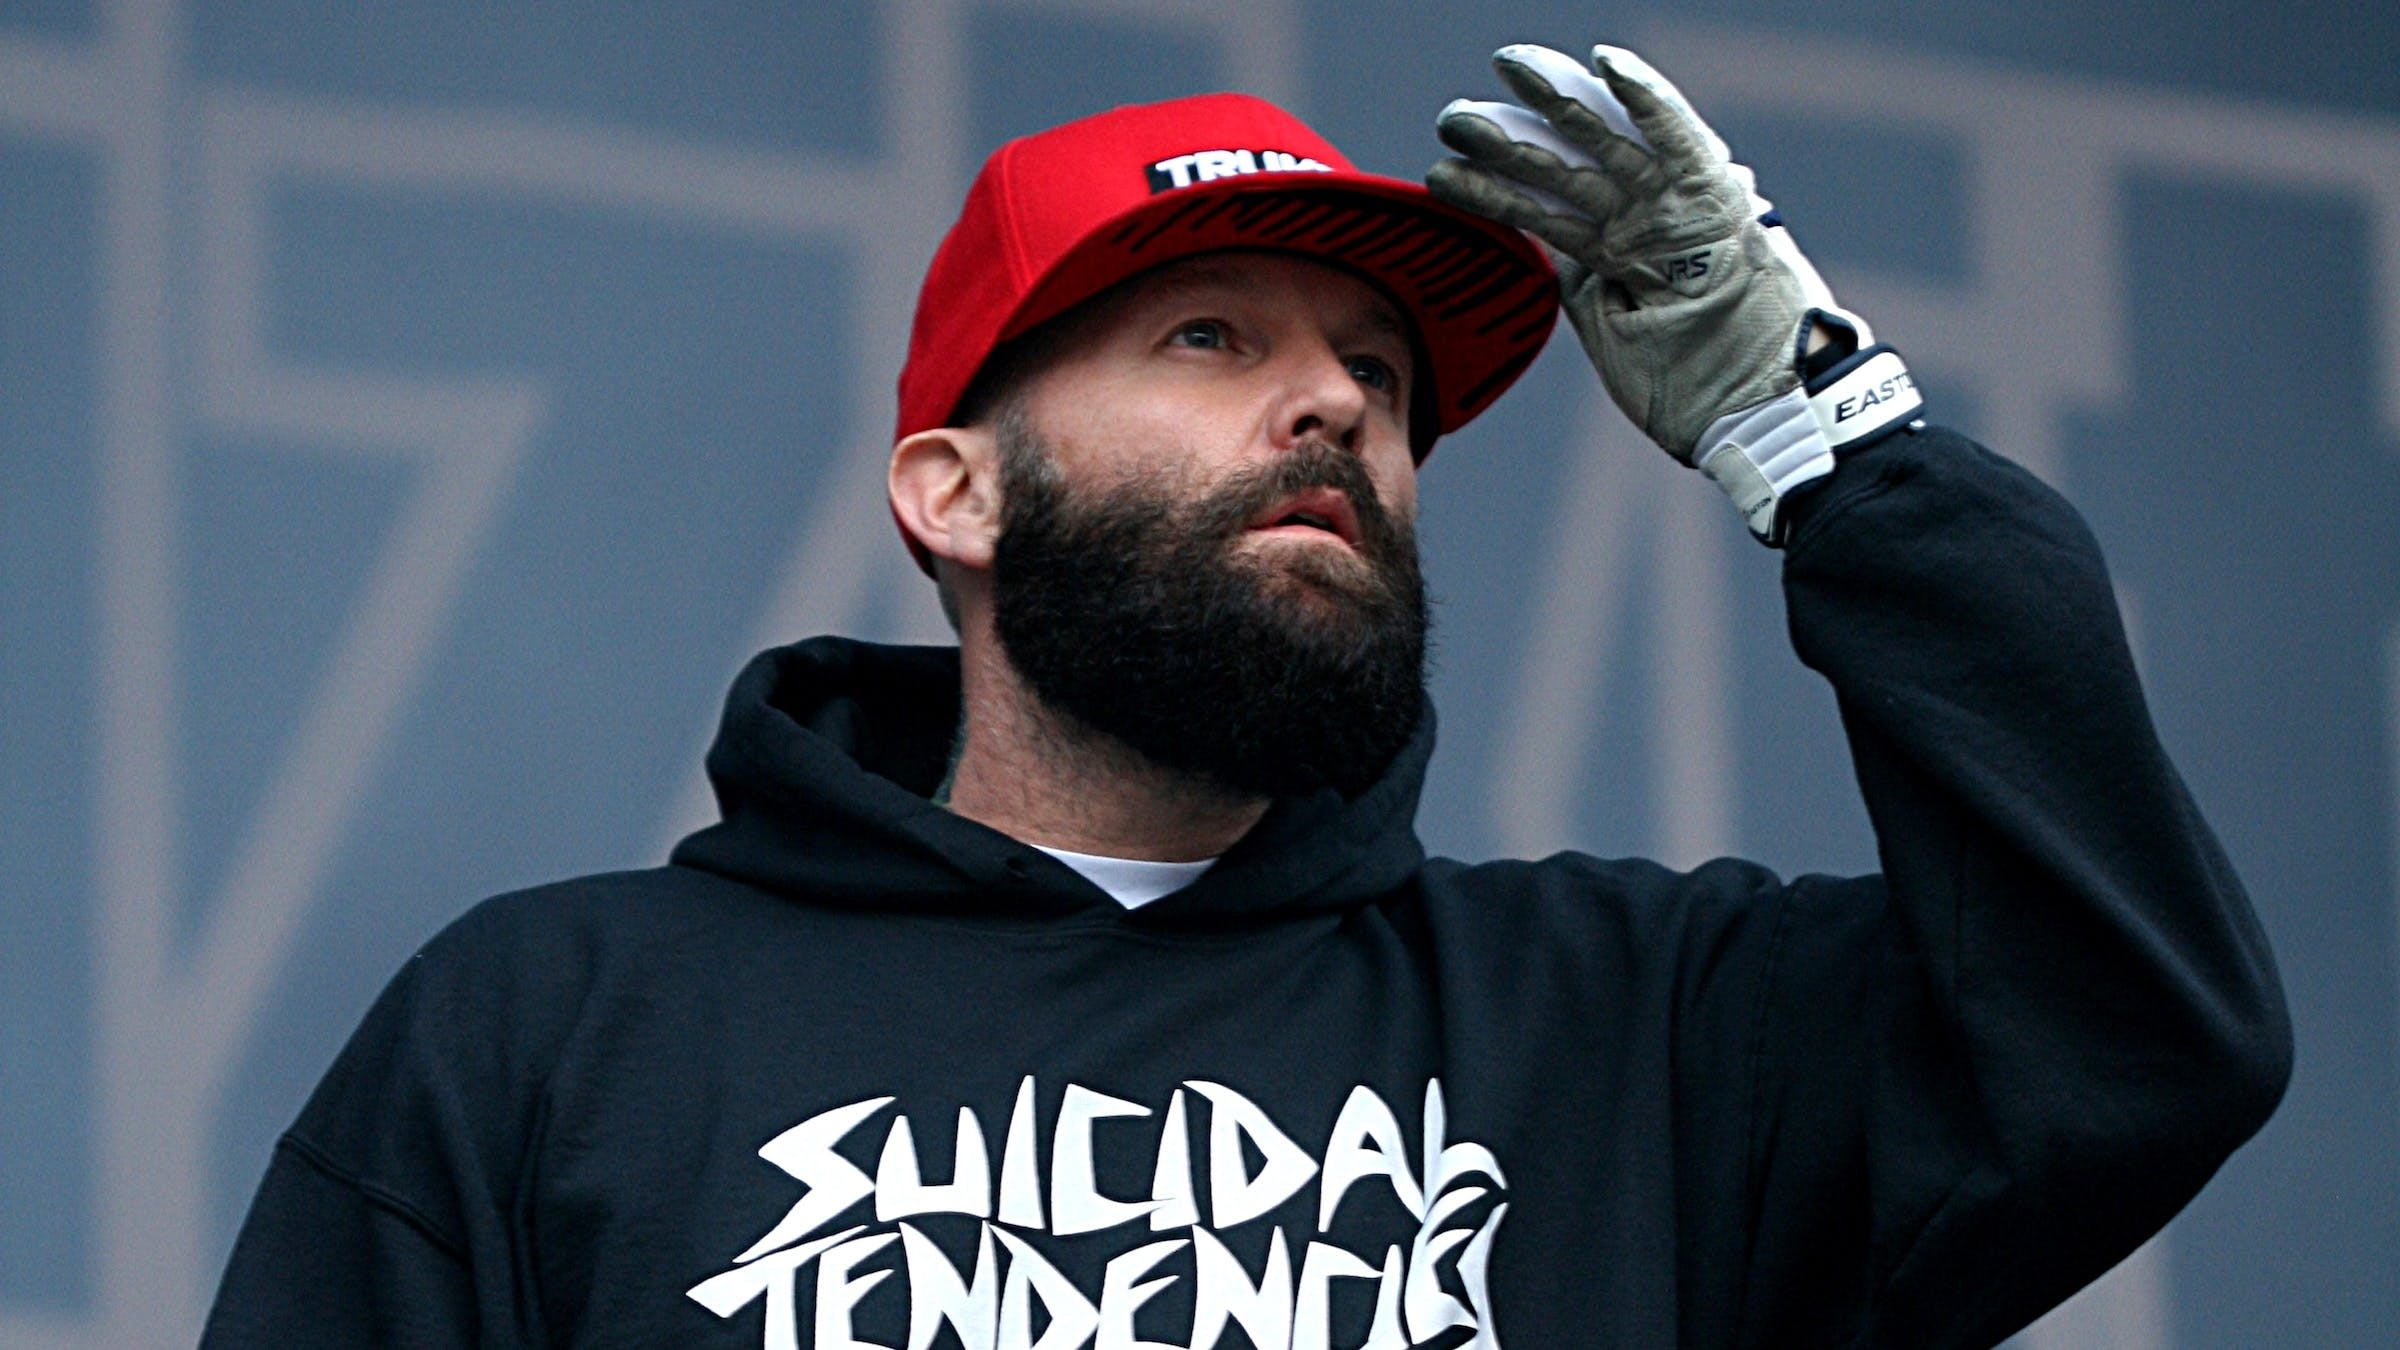 Fred Durst's House Burns Down In California Wildfires